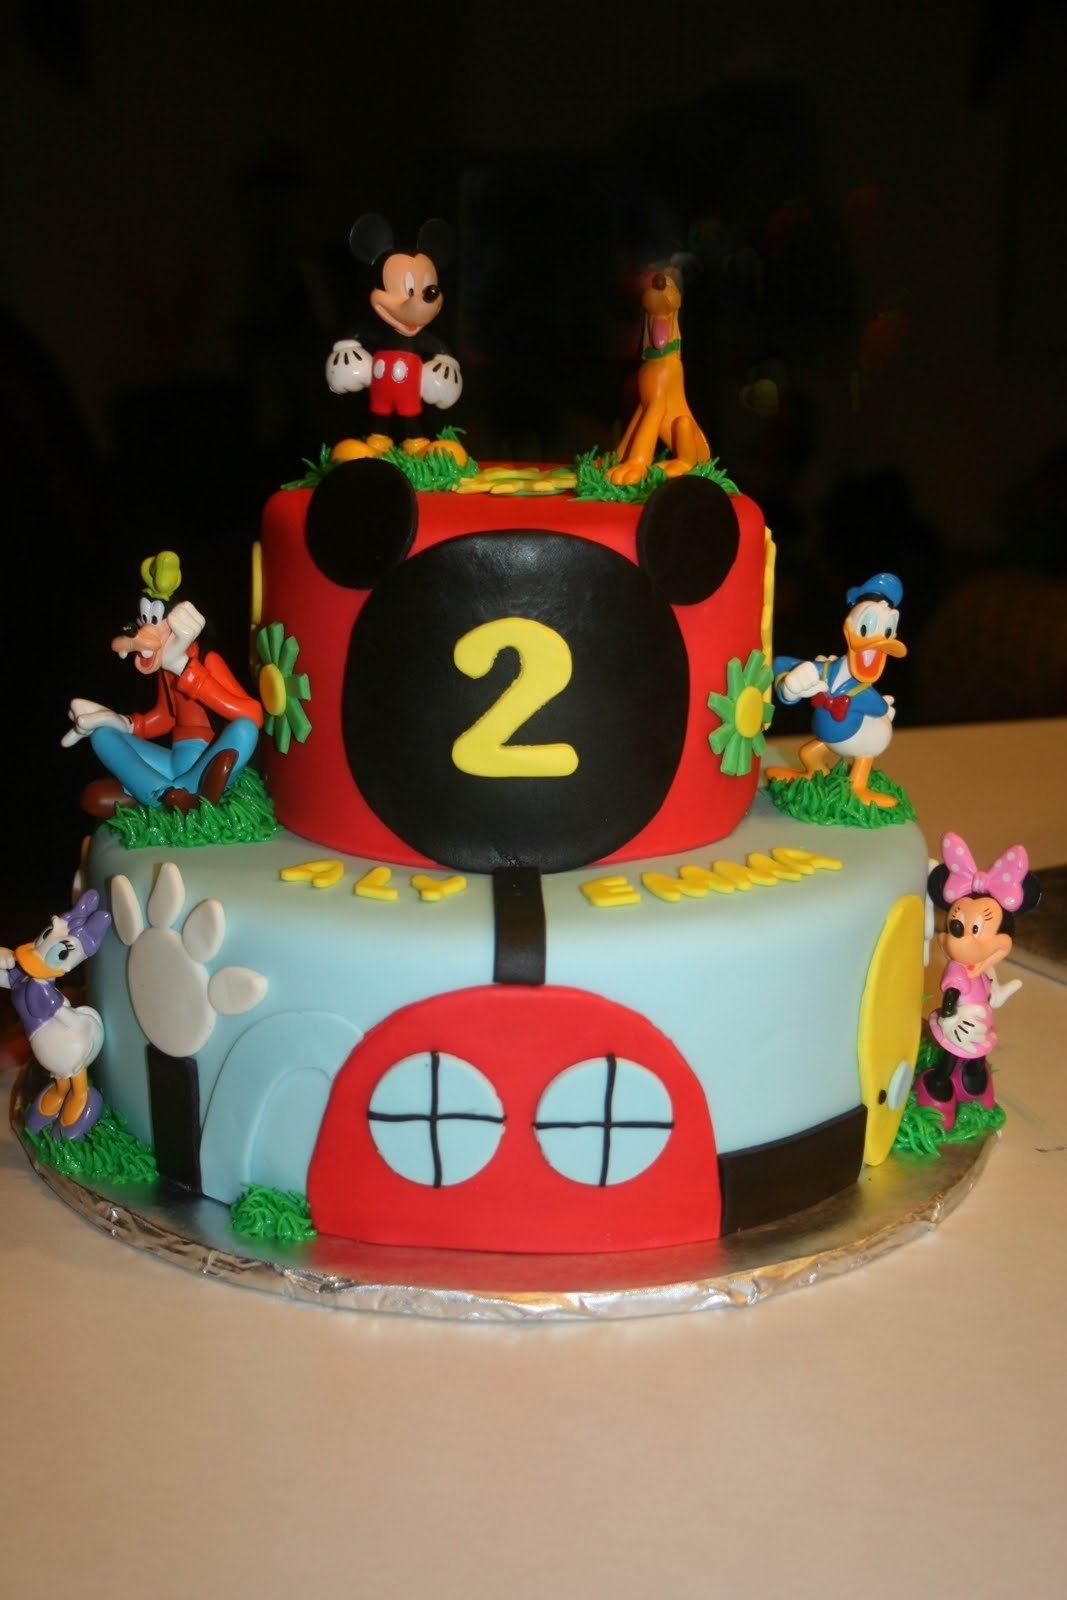 10 Most Popular Mickey Mouse Birthday Cake Ideas carlys cakes mickey mouse clubhouse this one is cute too cake 2020